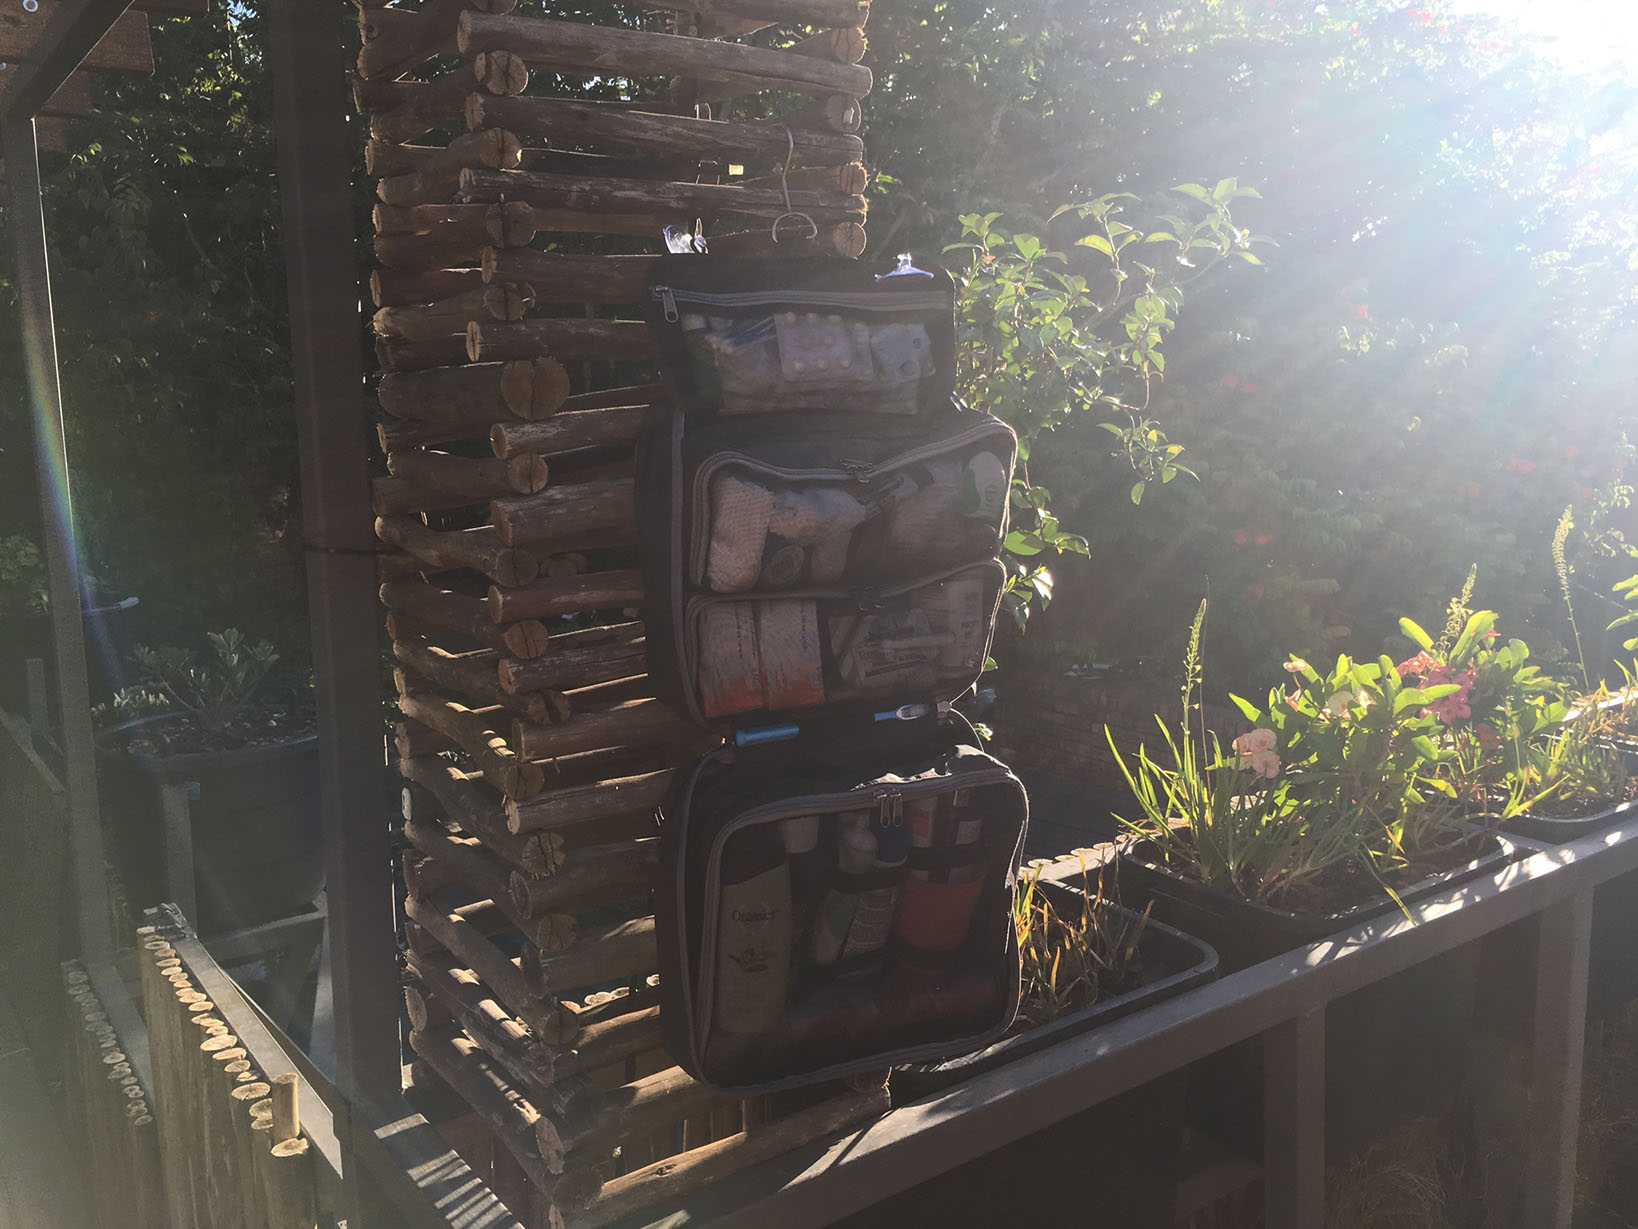 A super large hybrid overnight/toiletry bag for all situations and occasion. Check out our HangPac at an inpromtu outside bathroom getting some morning sun! Beautiful AND practical. Get yours!